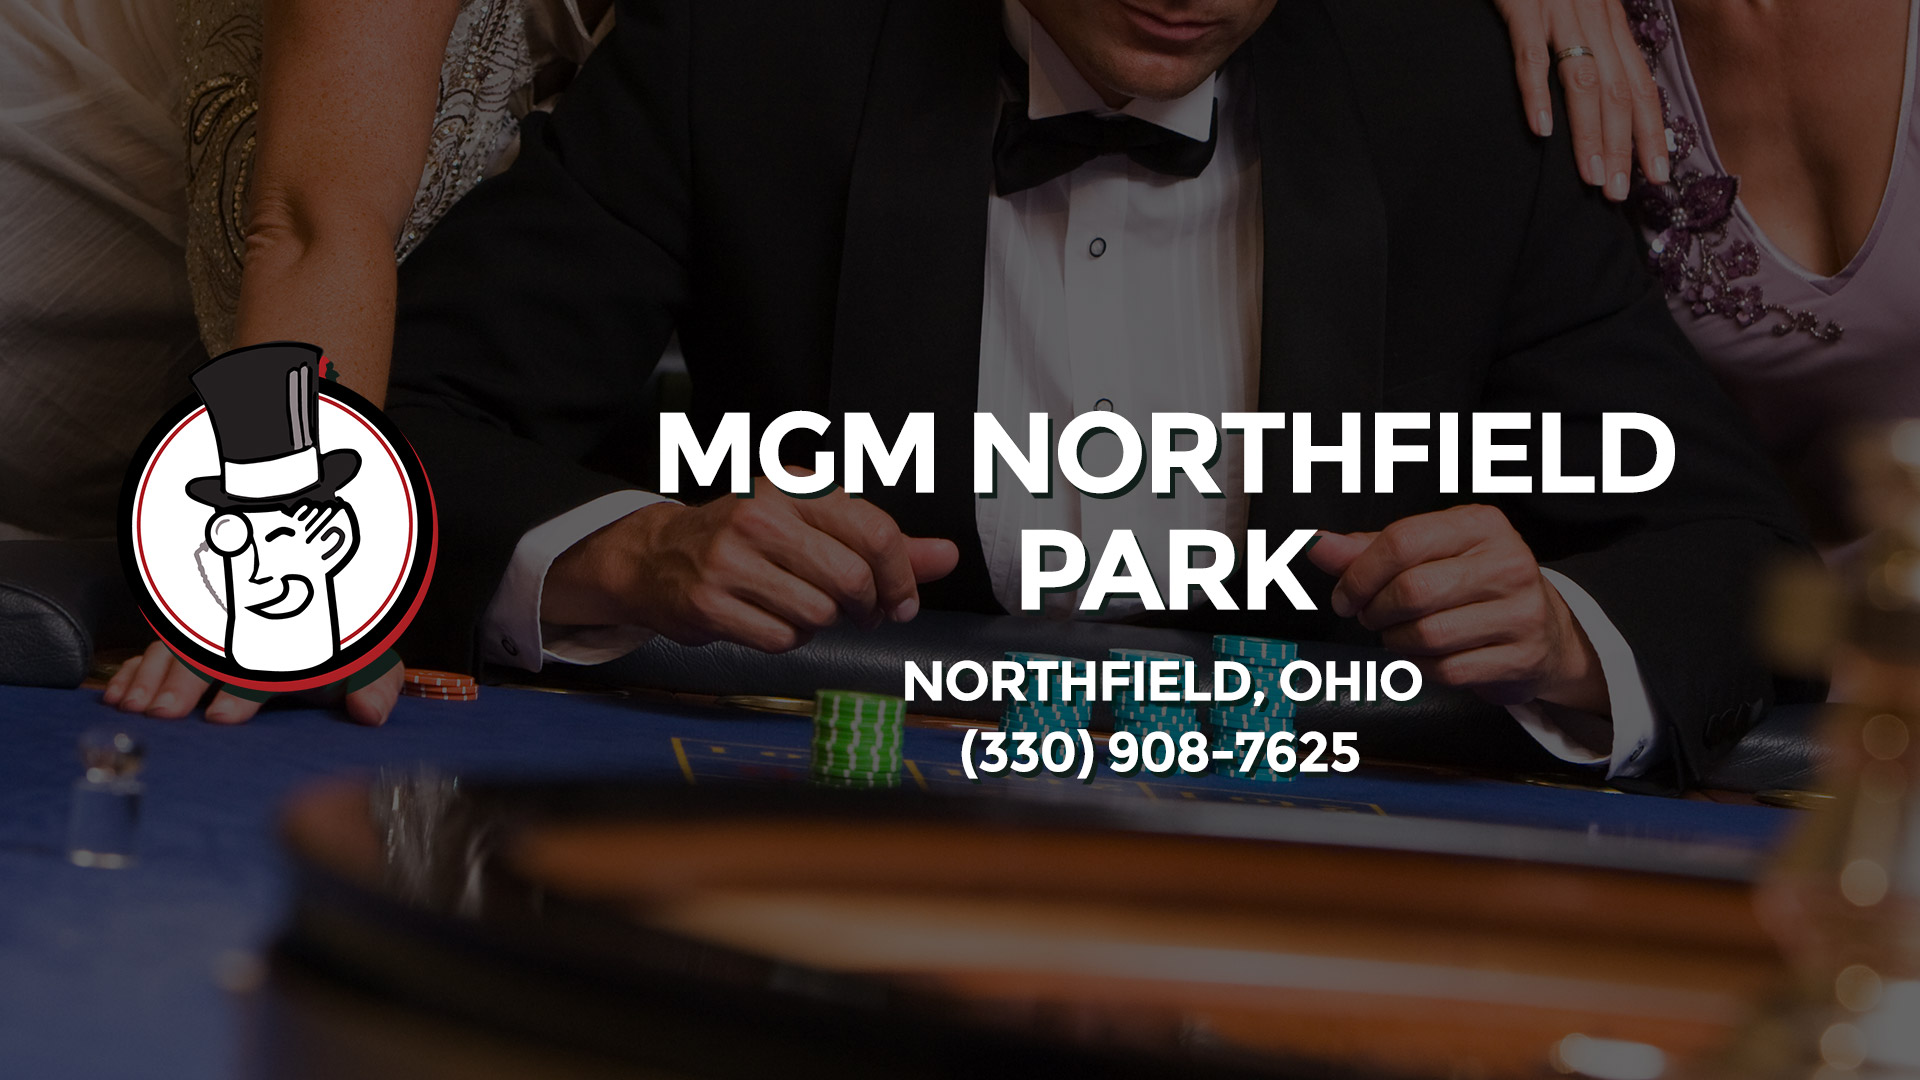 MGM NORTHFIELD PARK NORTHFIELD OH